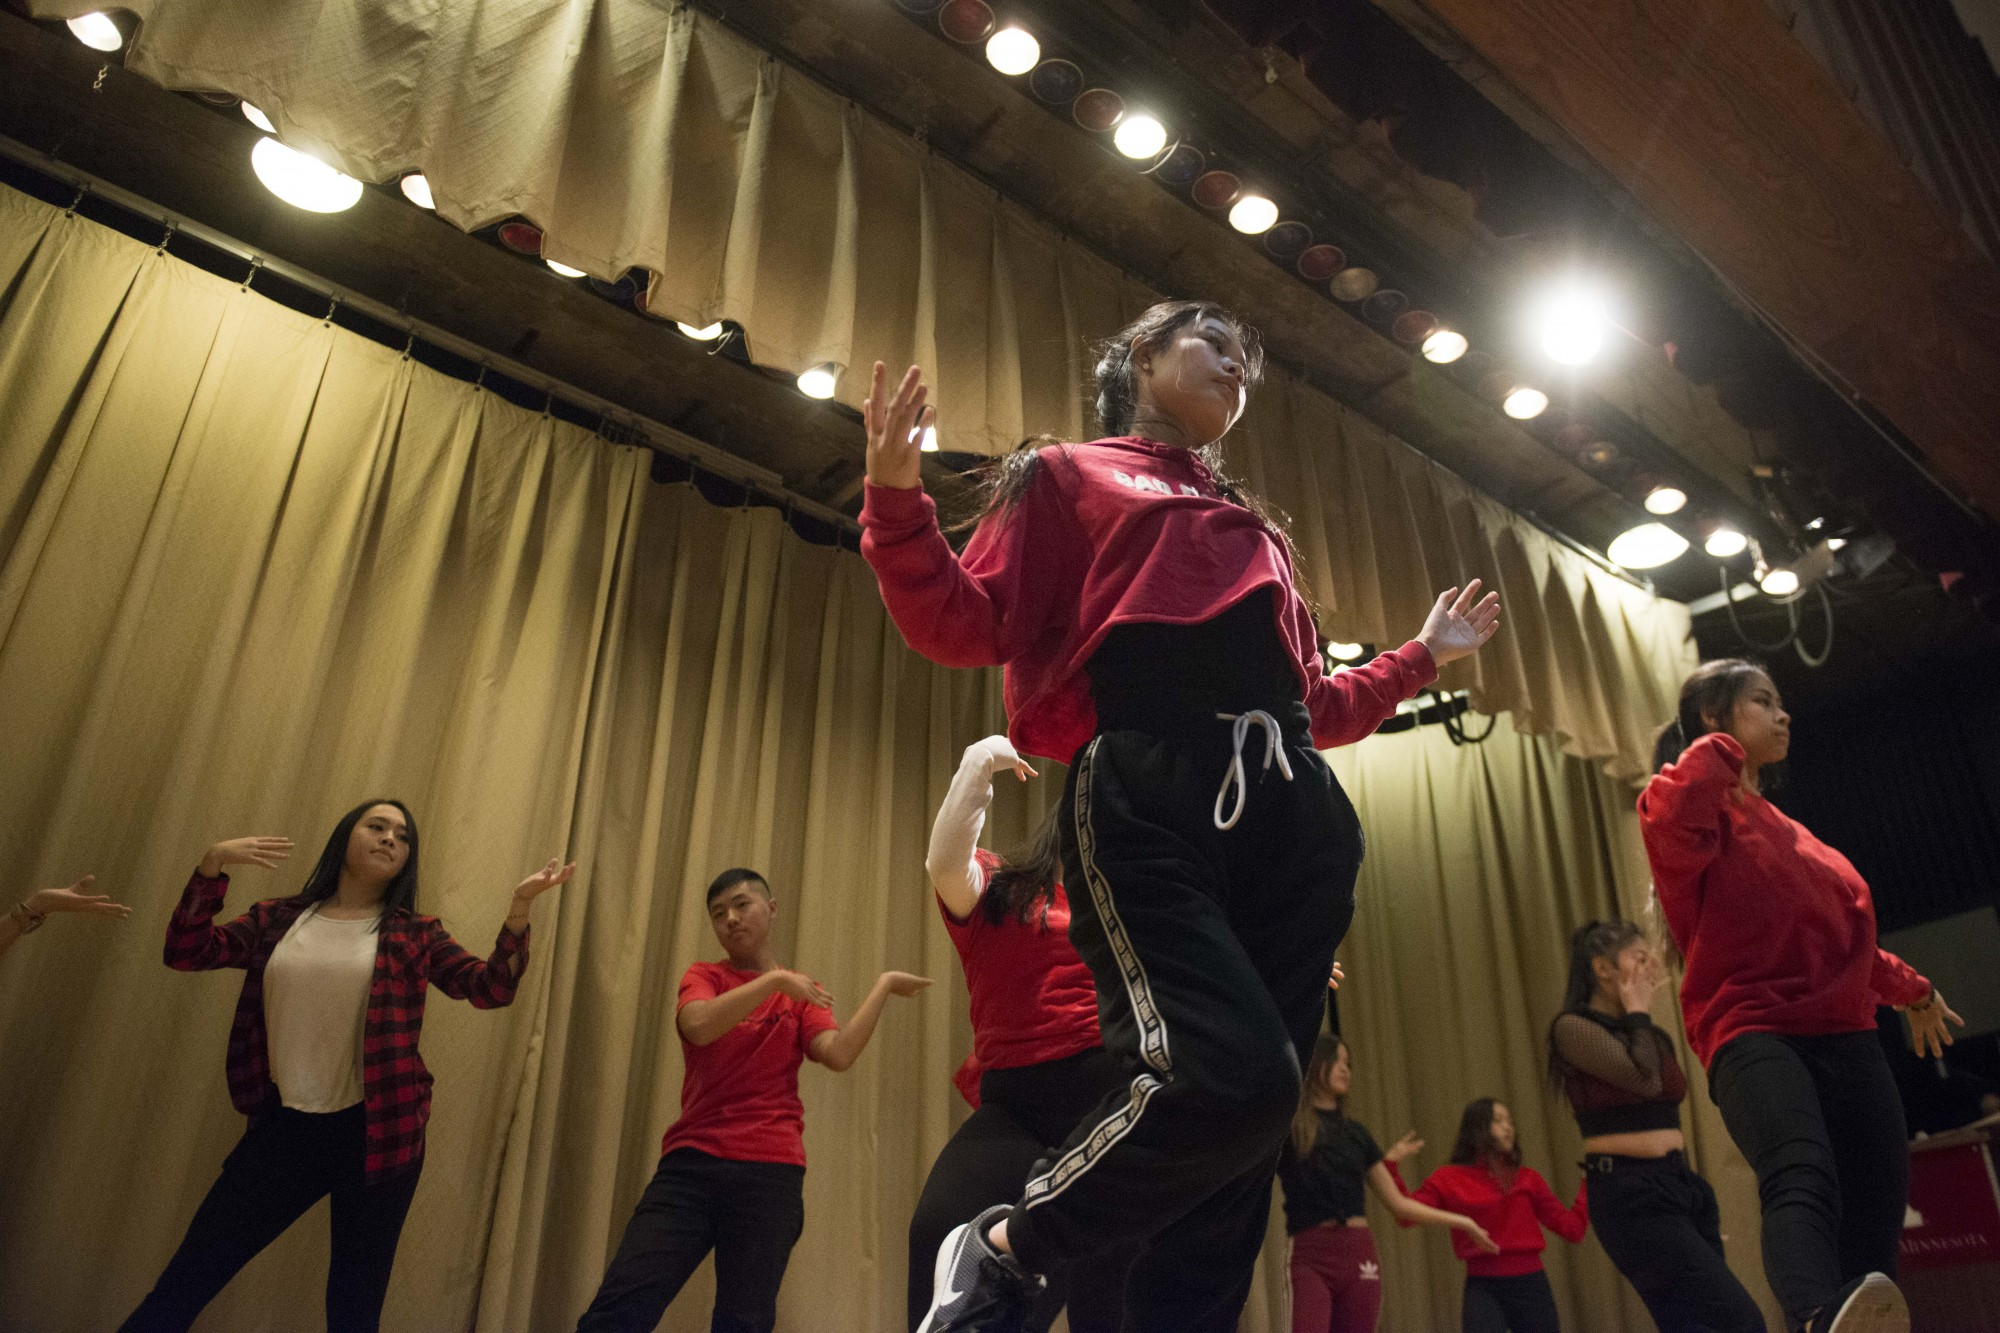 Cre.Ture Crew performs during the Hmong New Year event at the St. Paul Student Center on Friday, Nov. 8. The majority of the group's performers are high school students.